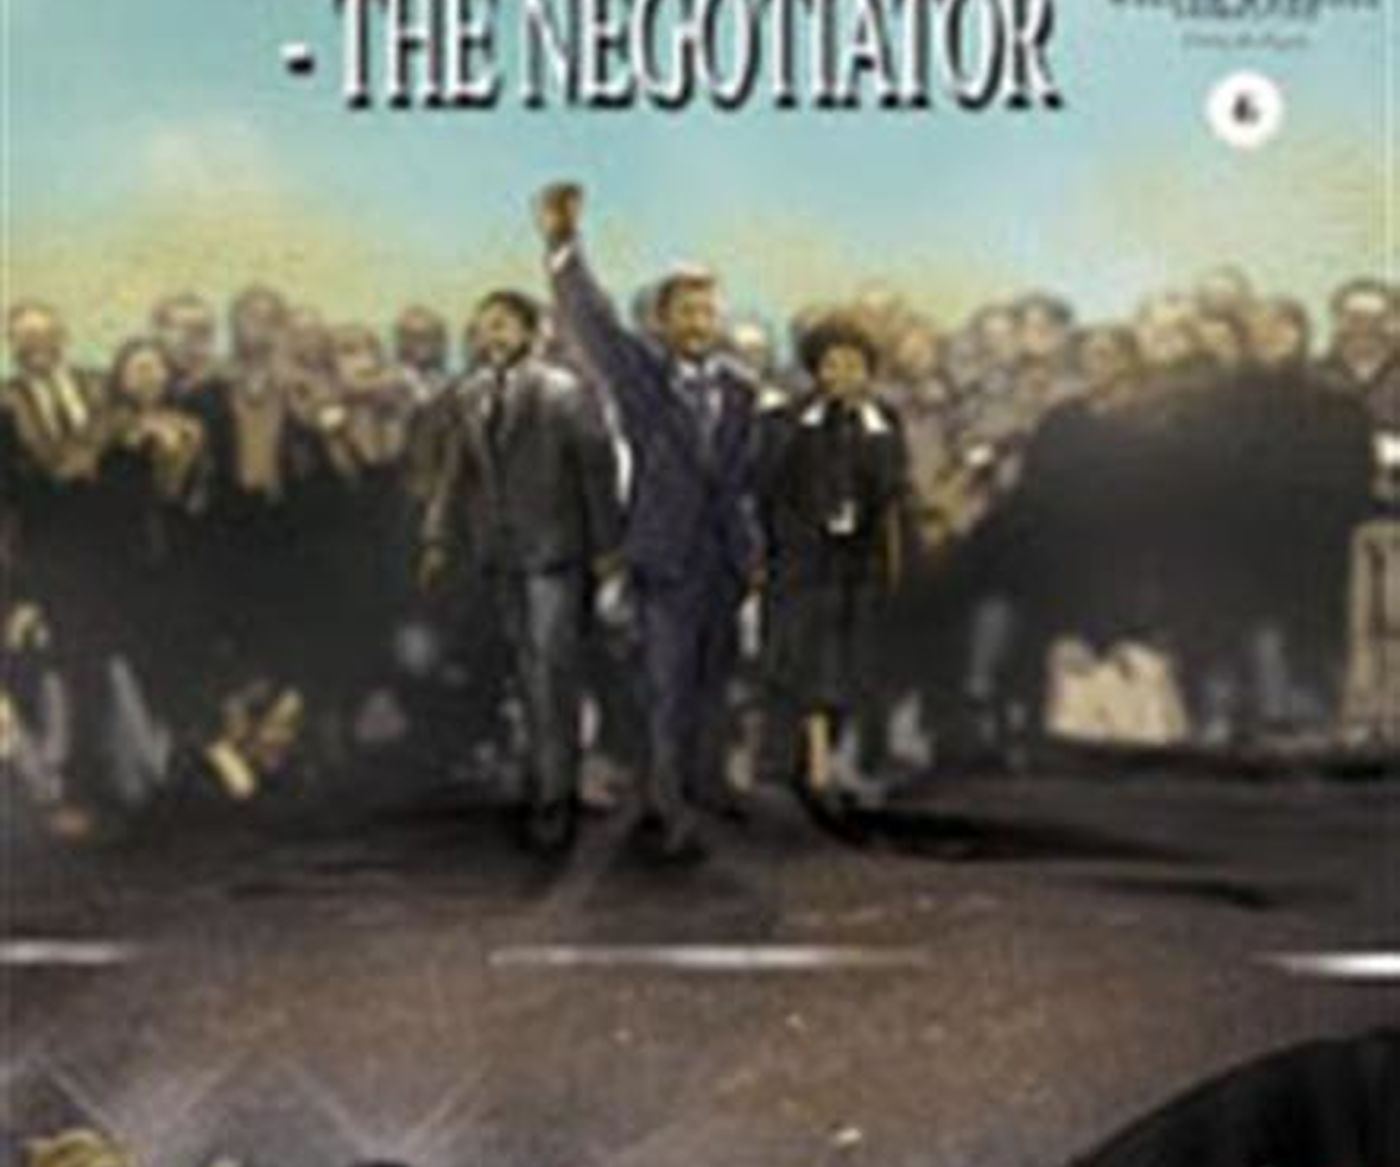 Comics6  The Negotiator Medium 1